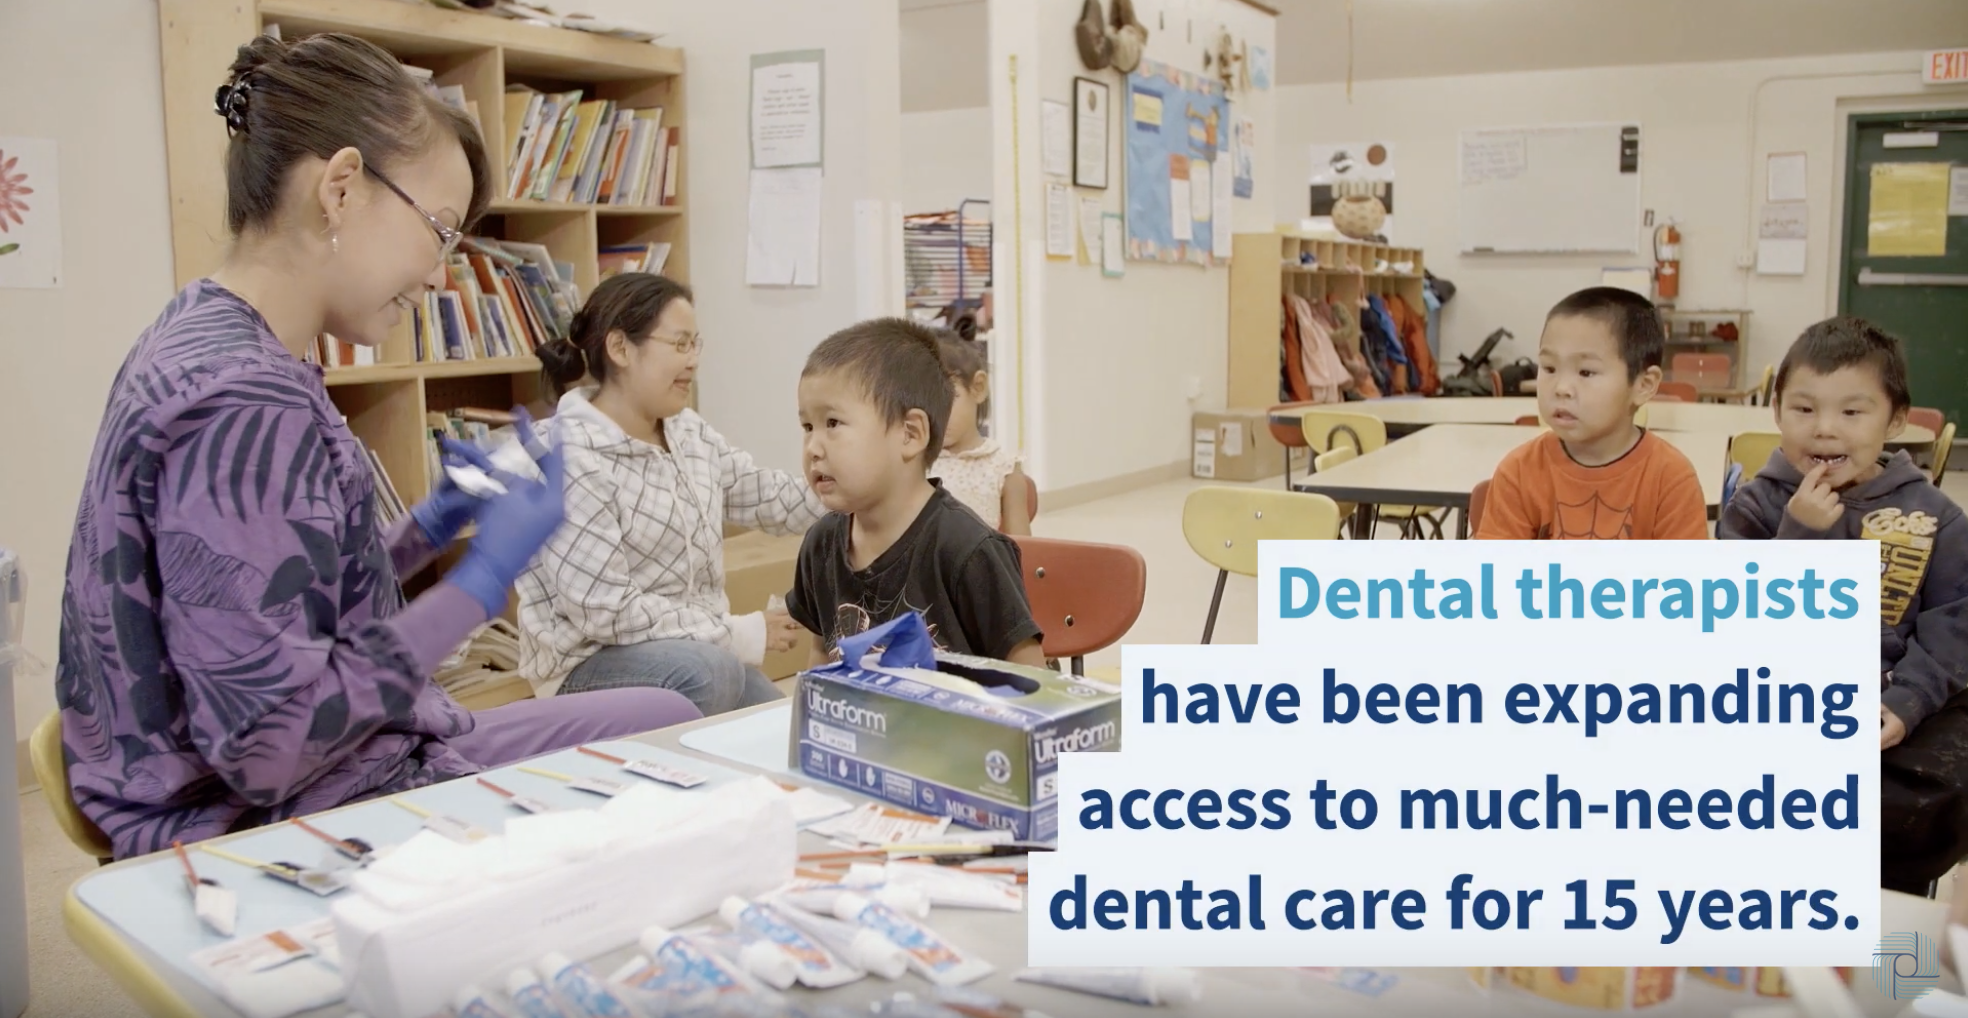 National Partnership for Dental Therapy | How Dental Therapists Serve their Community